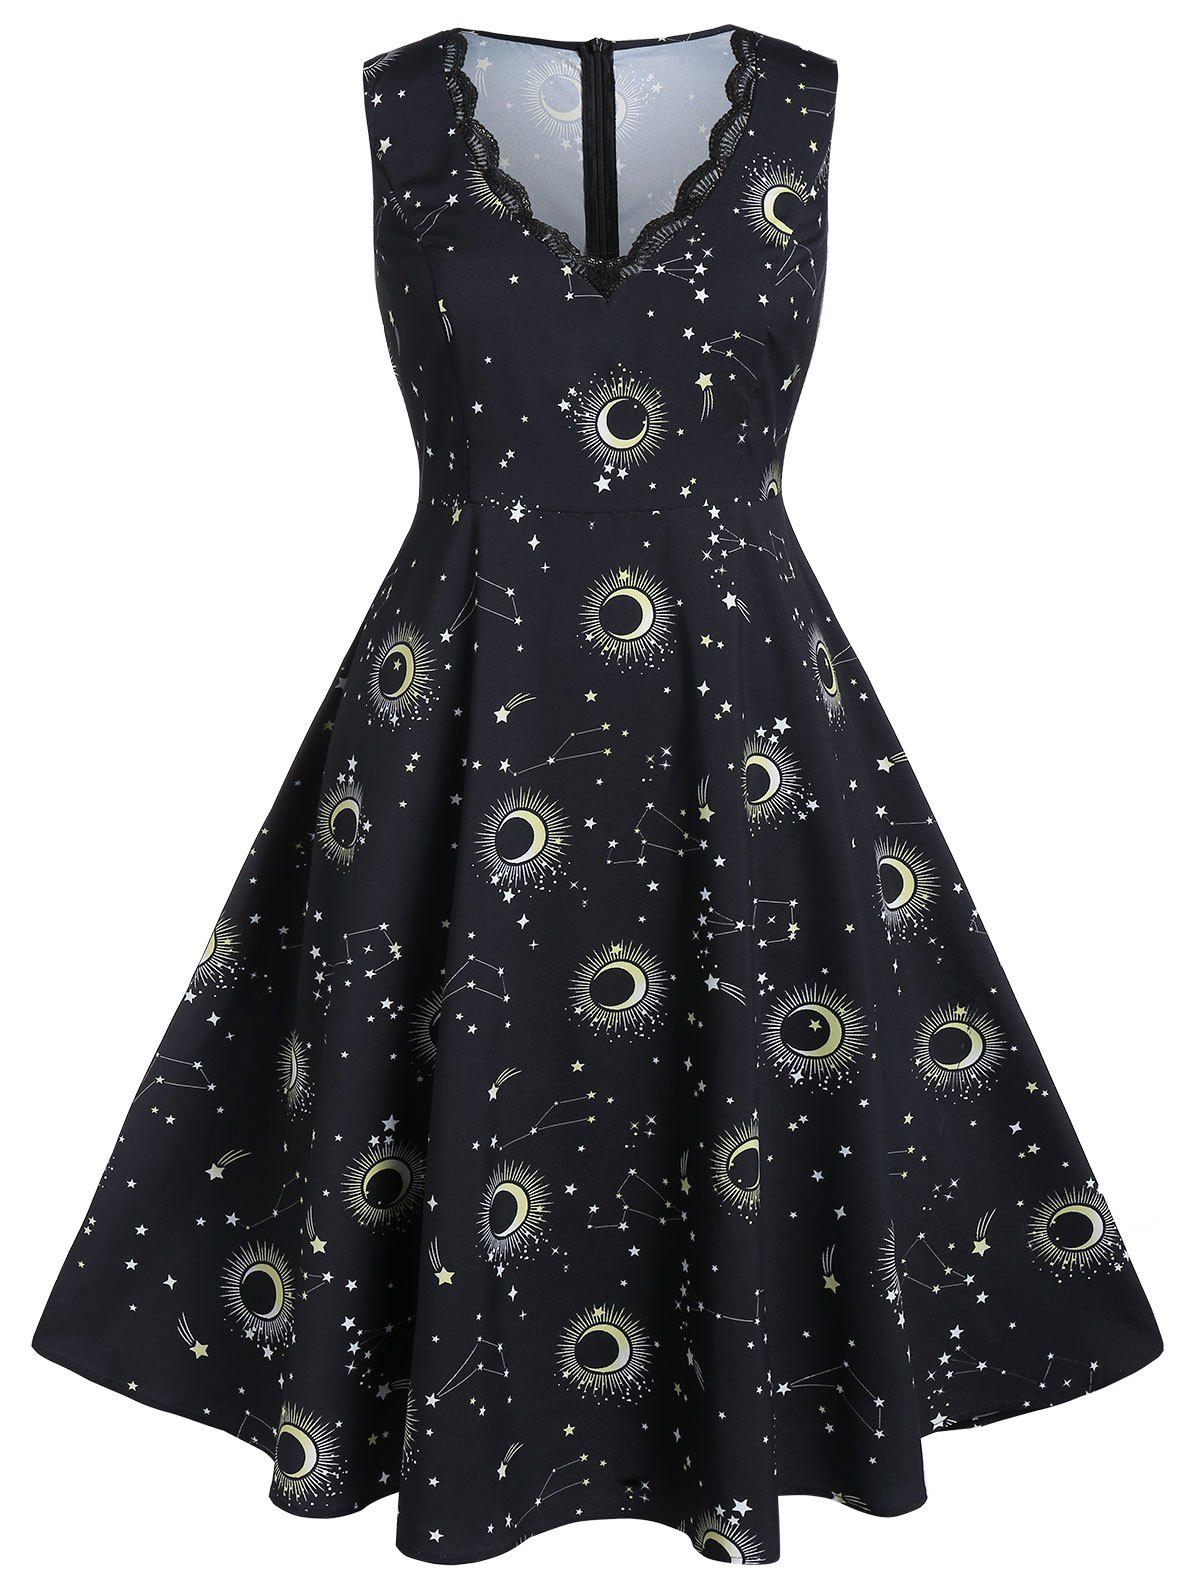 Plus Size Moon and Star Print Scalloped Midi Dress - BLACK 5X